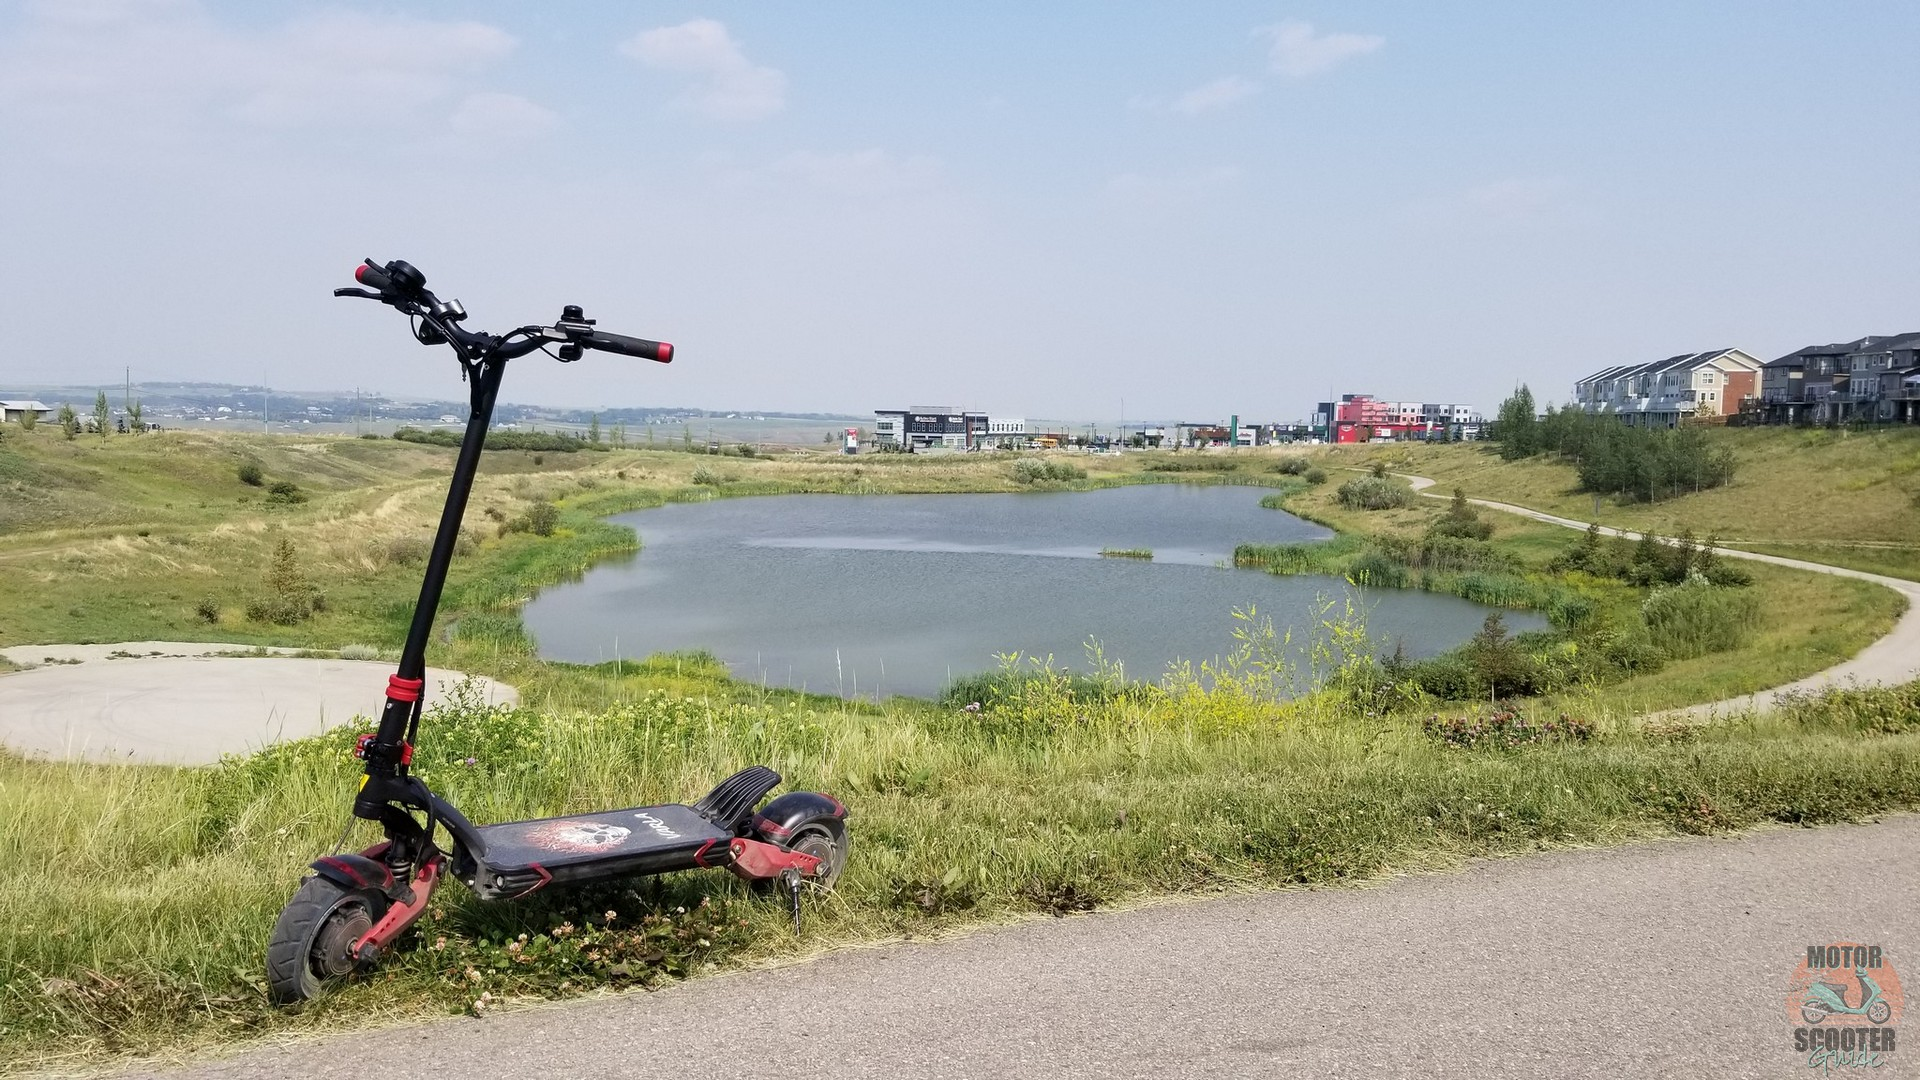 Eagle One scooter parked on side of a walking path with lake in background